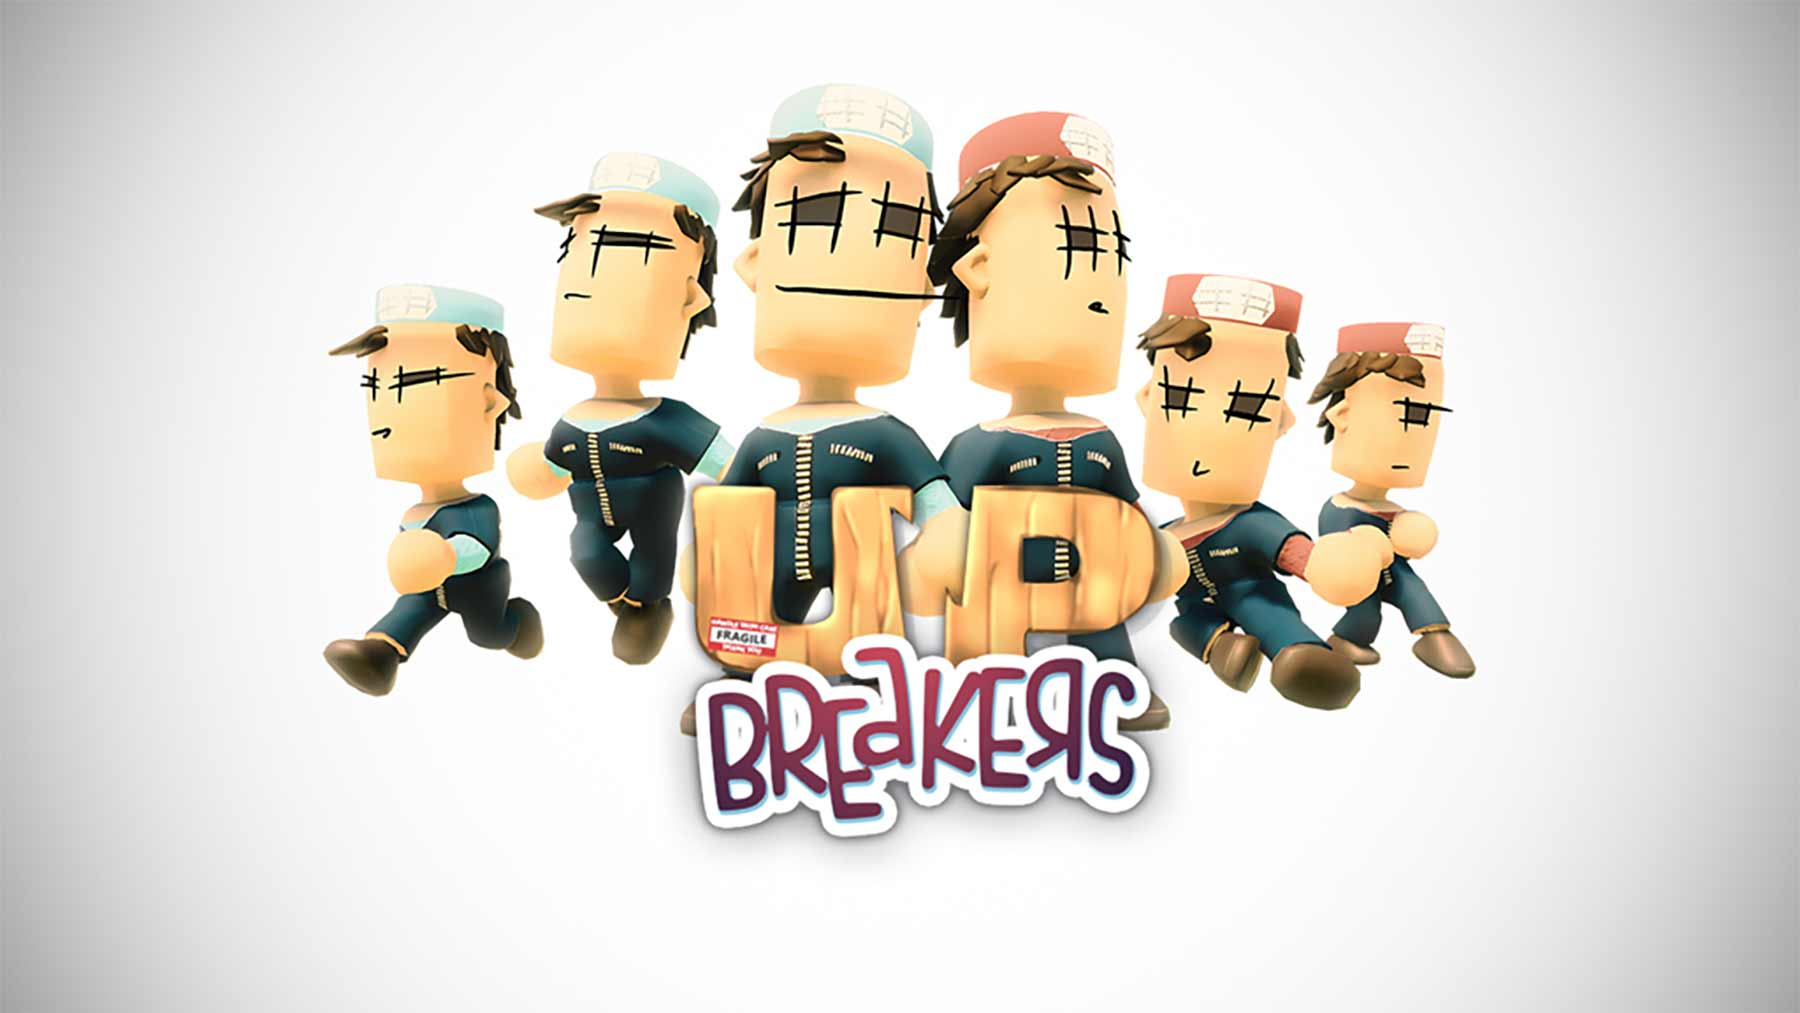 Multiplayer-Umzugshelfer-Battle: UpBreakers upbreakers-kickstarter